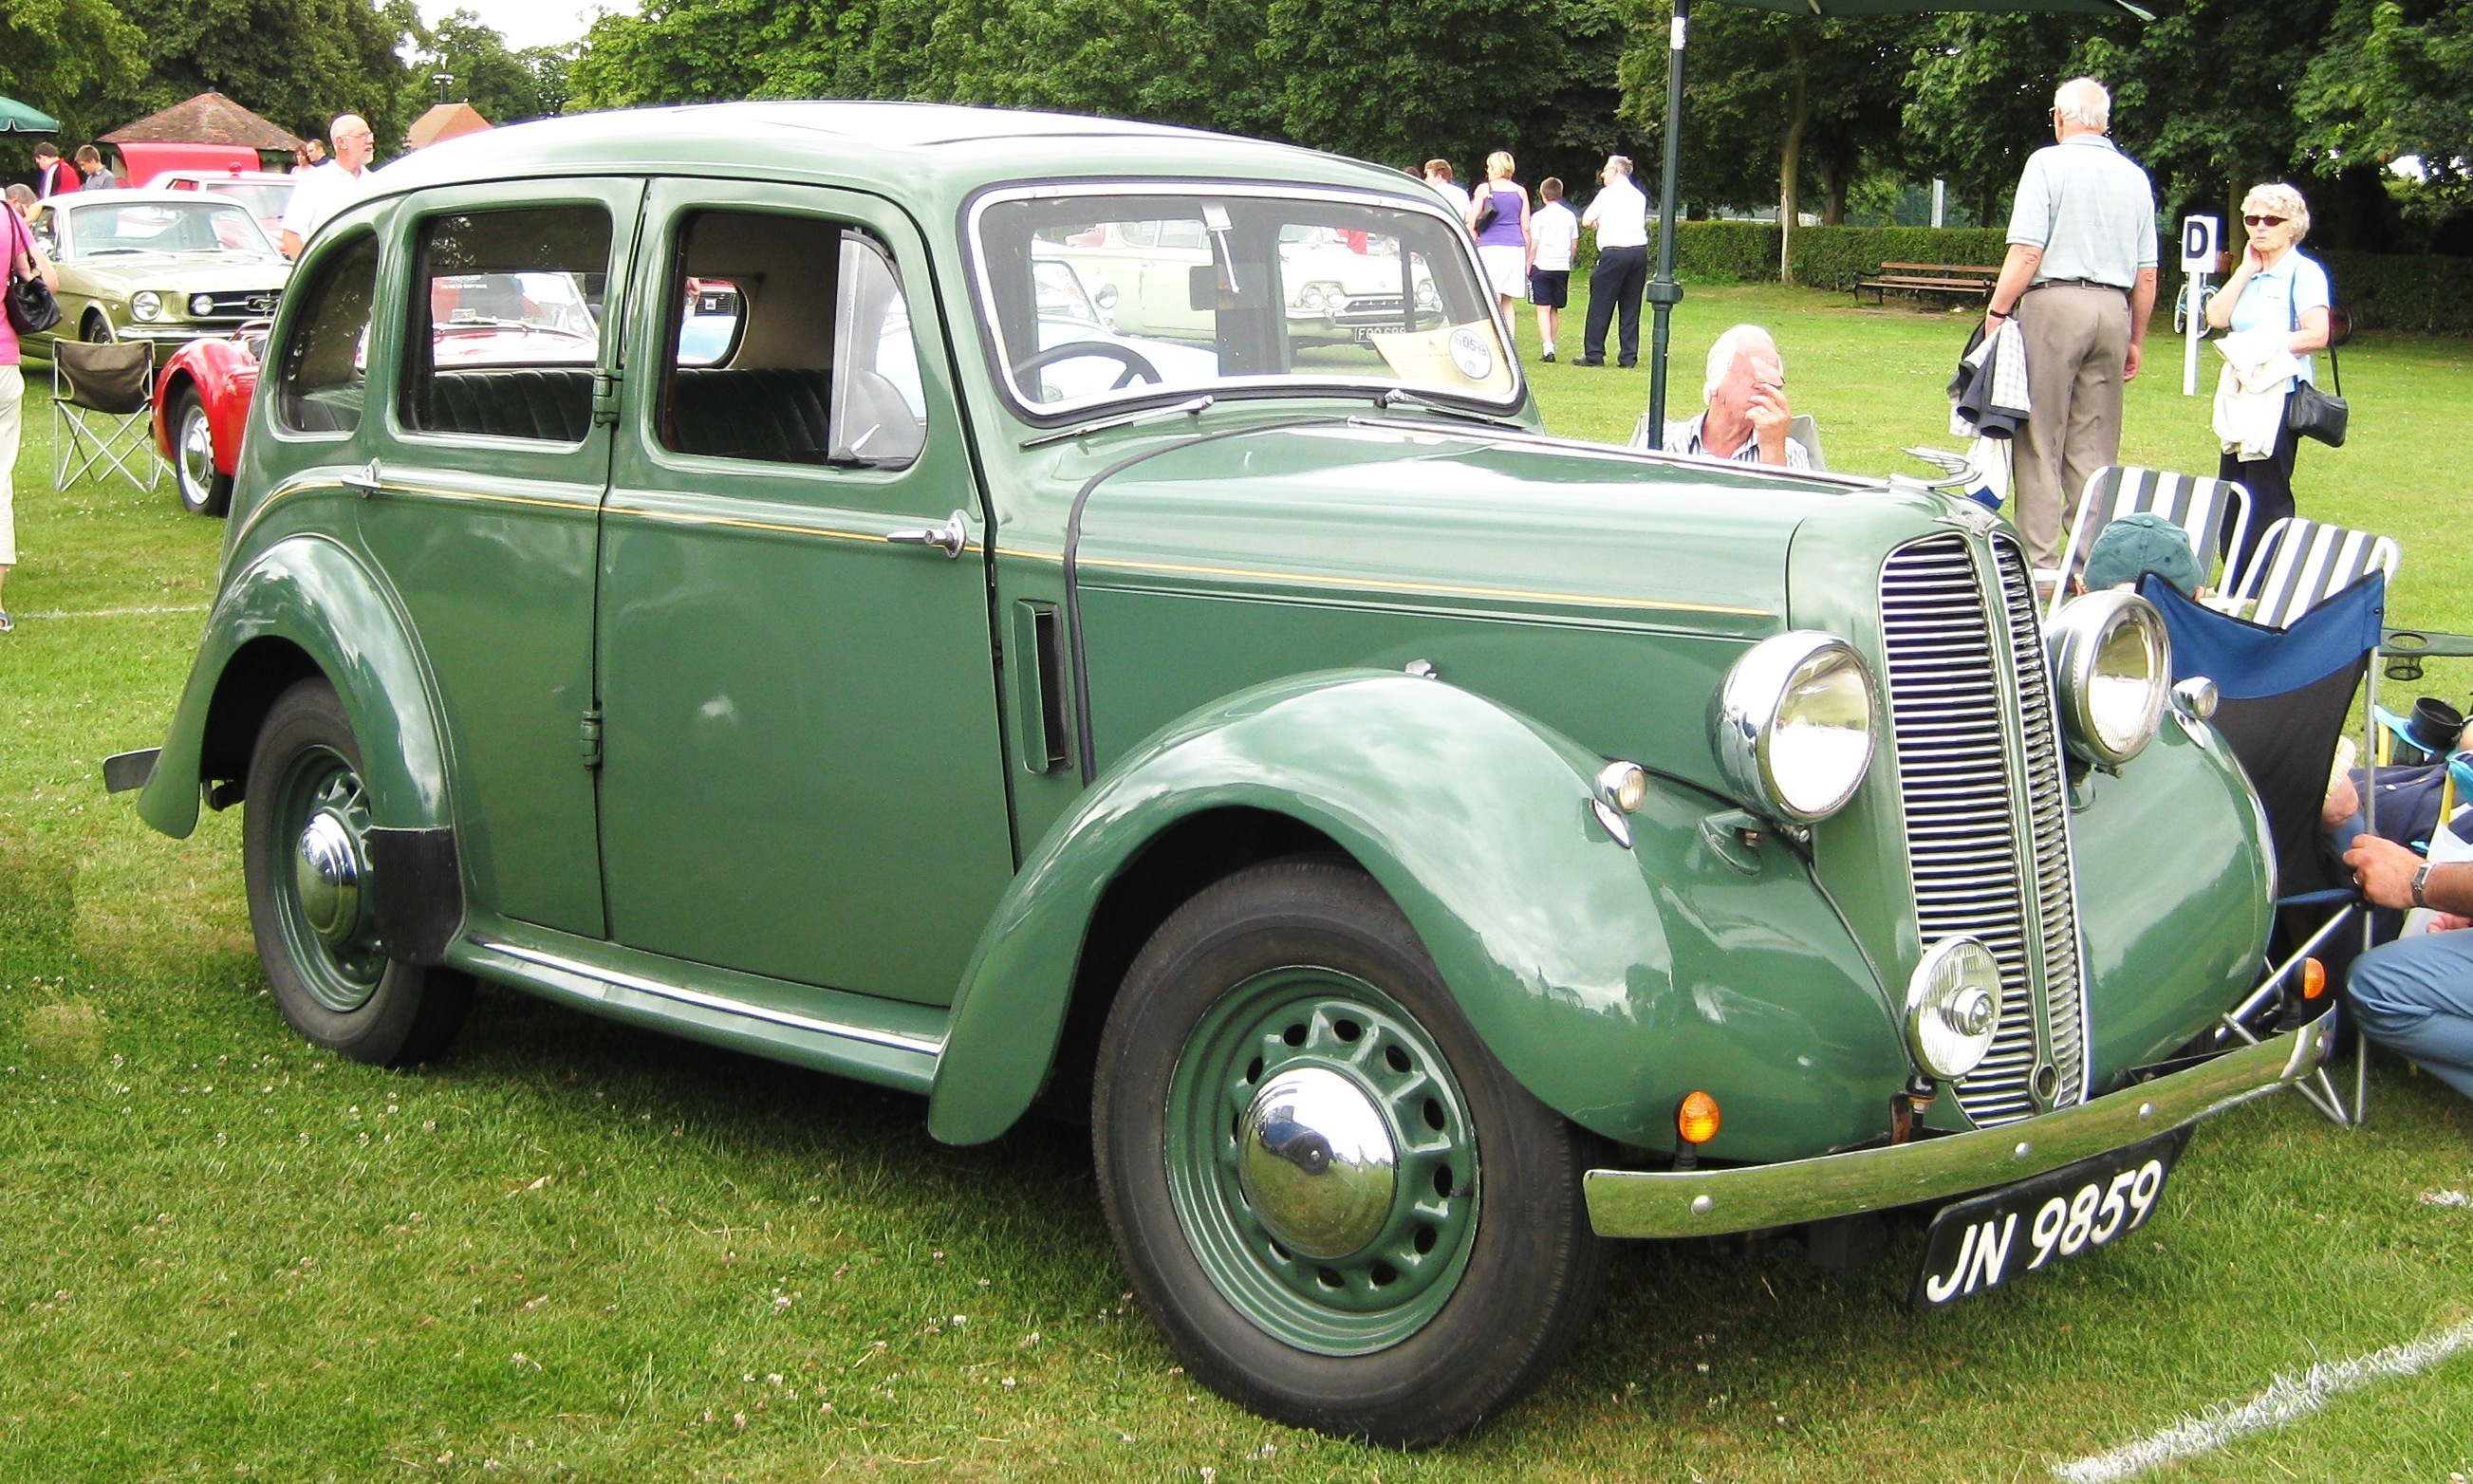 File:Hillman Minx manufactured 1937 1184 cc according to tax office.JPG